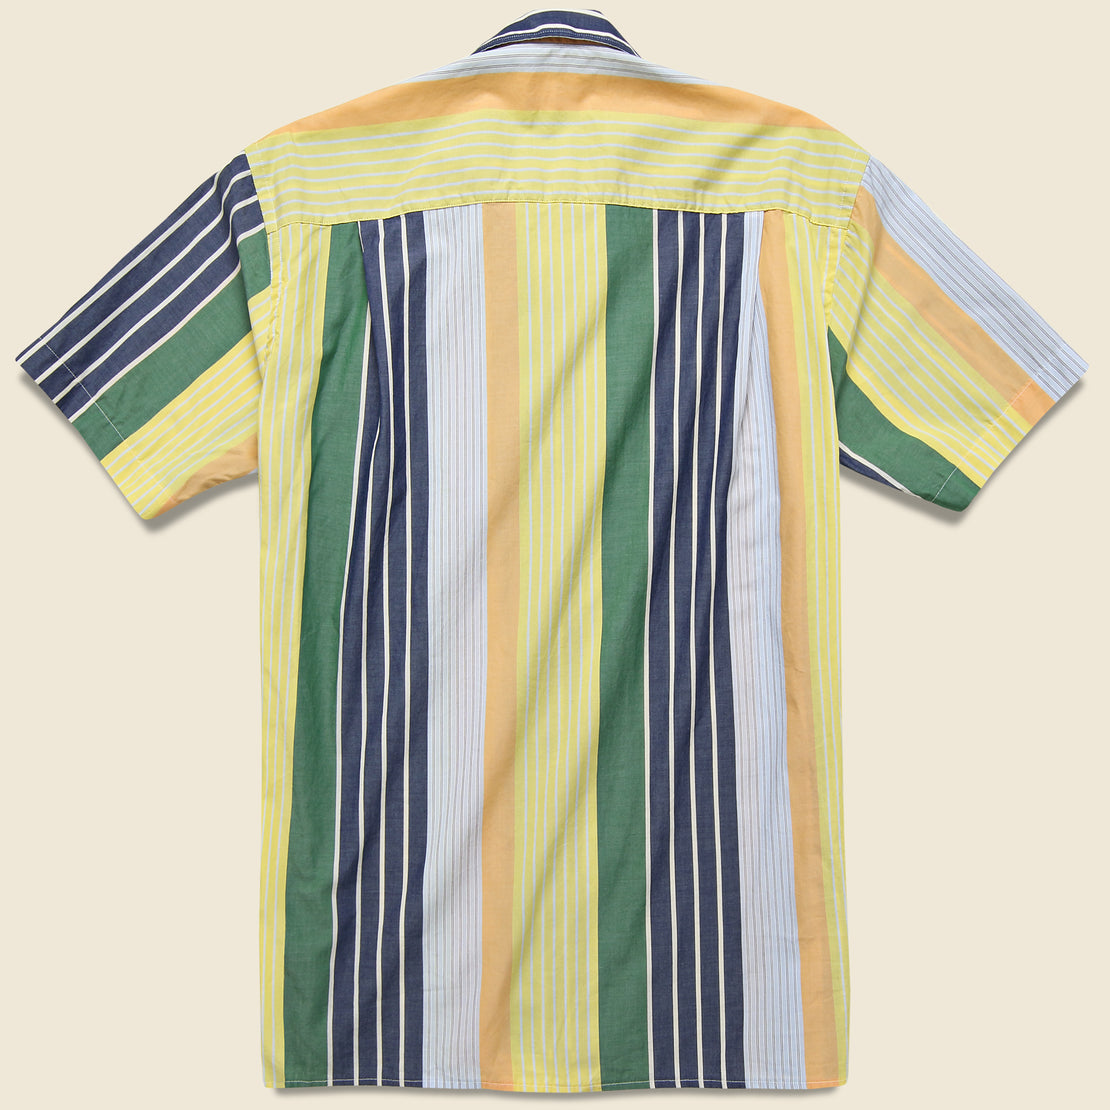 Awning Stripe Camp Shirt - Multi